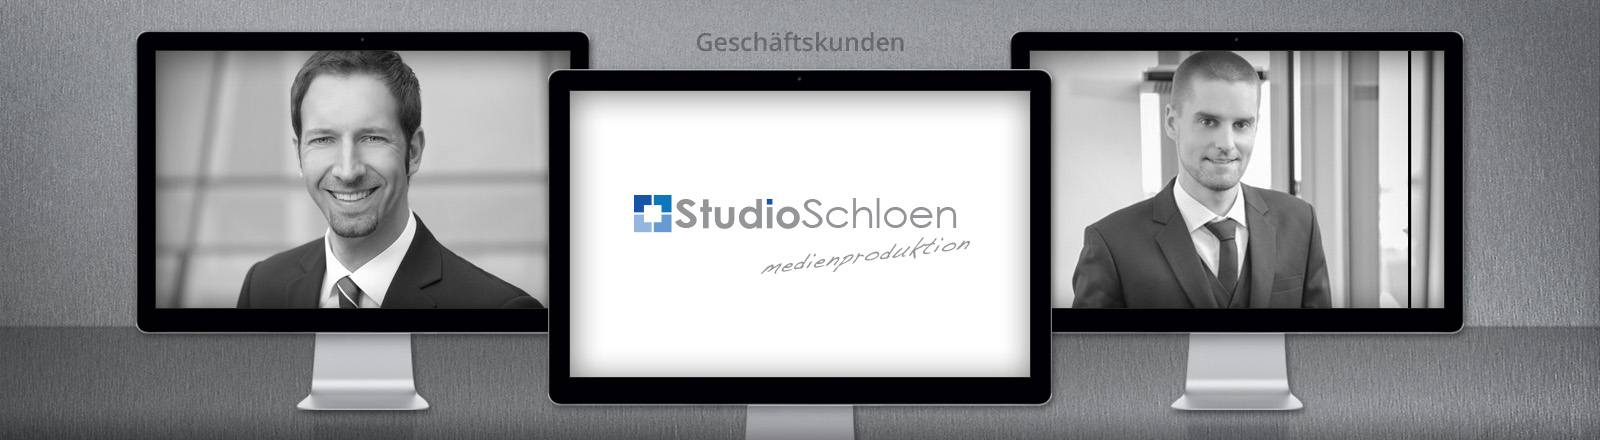 00_pltzh_business.studio-schloen.de